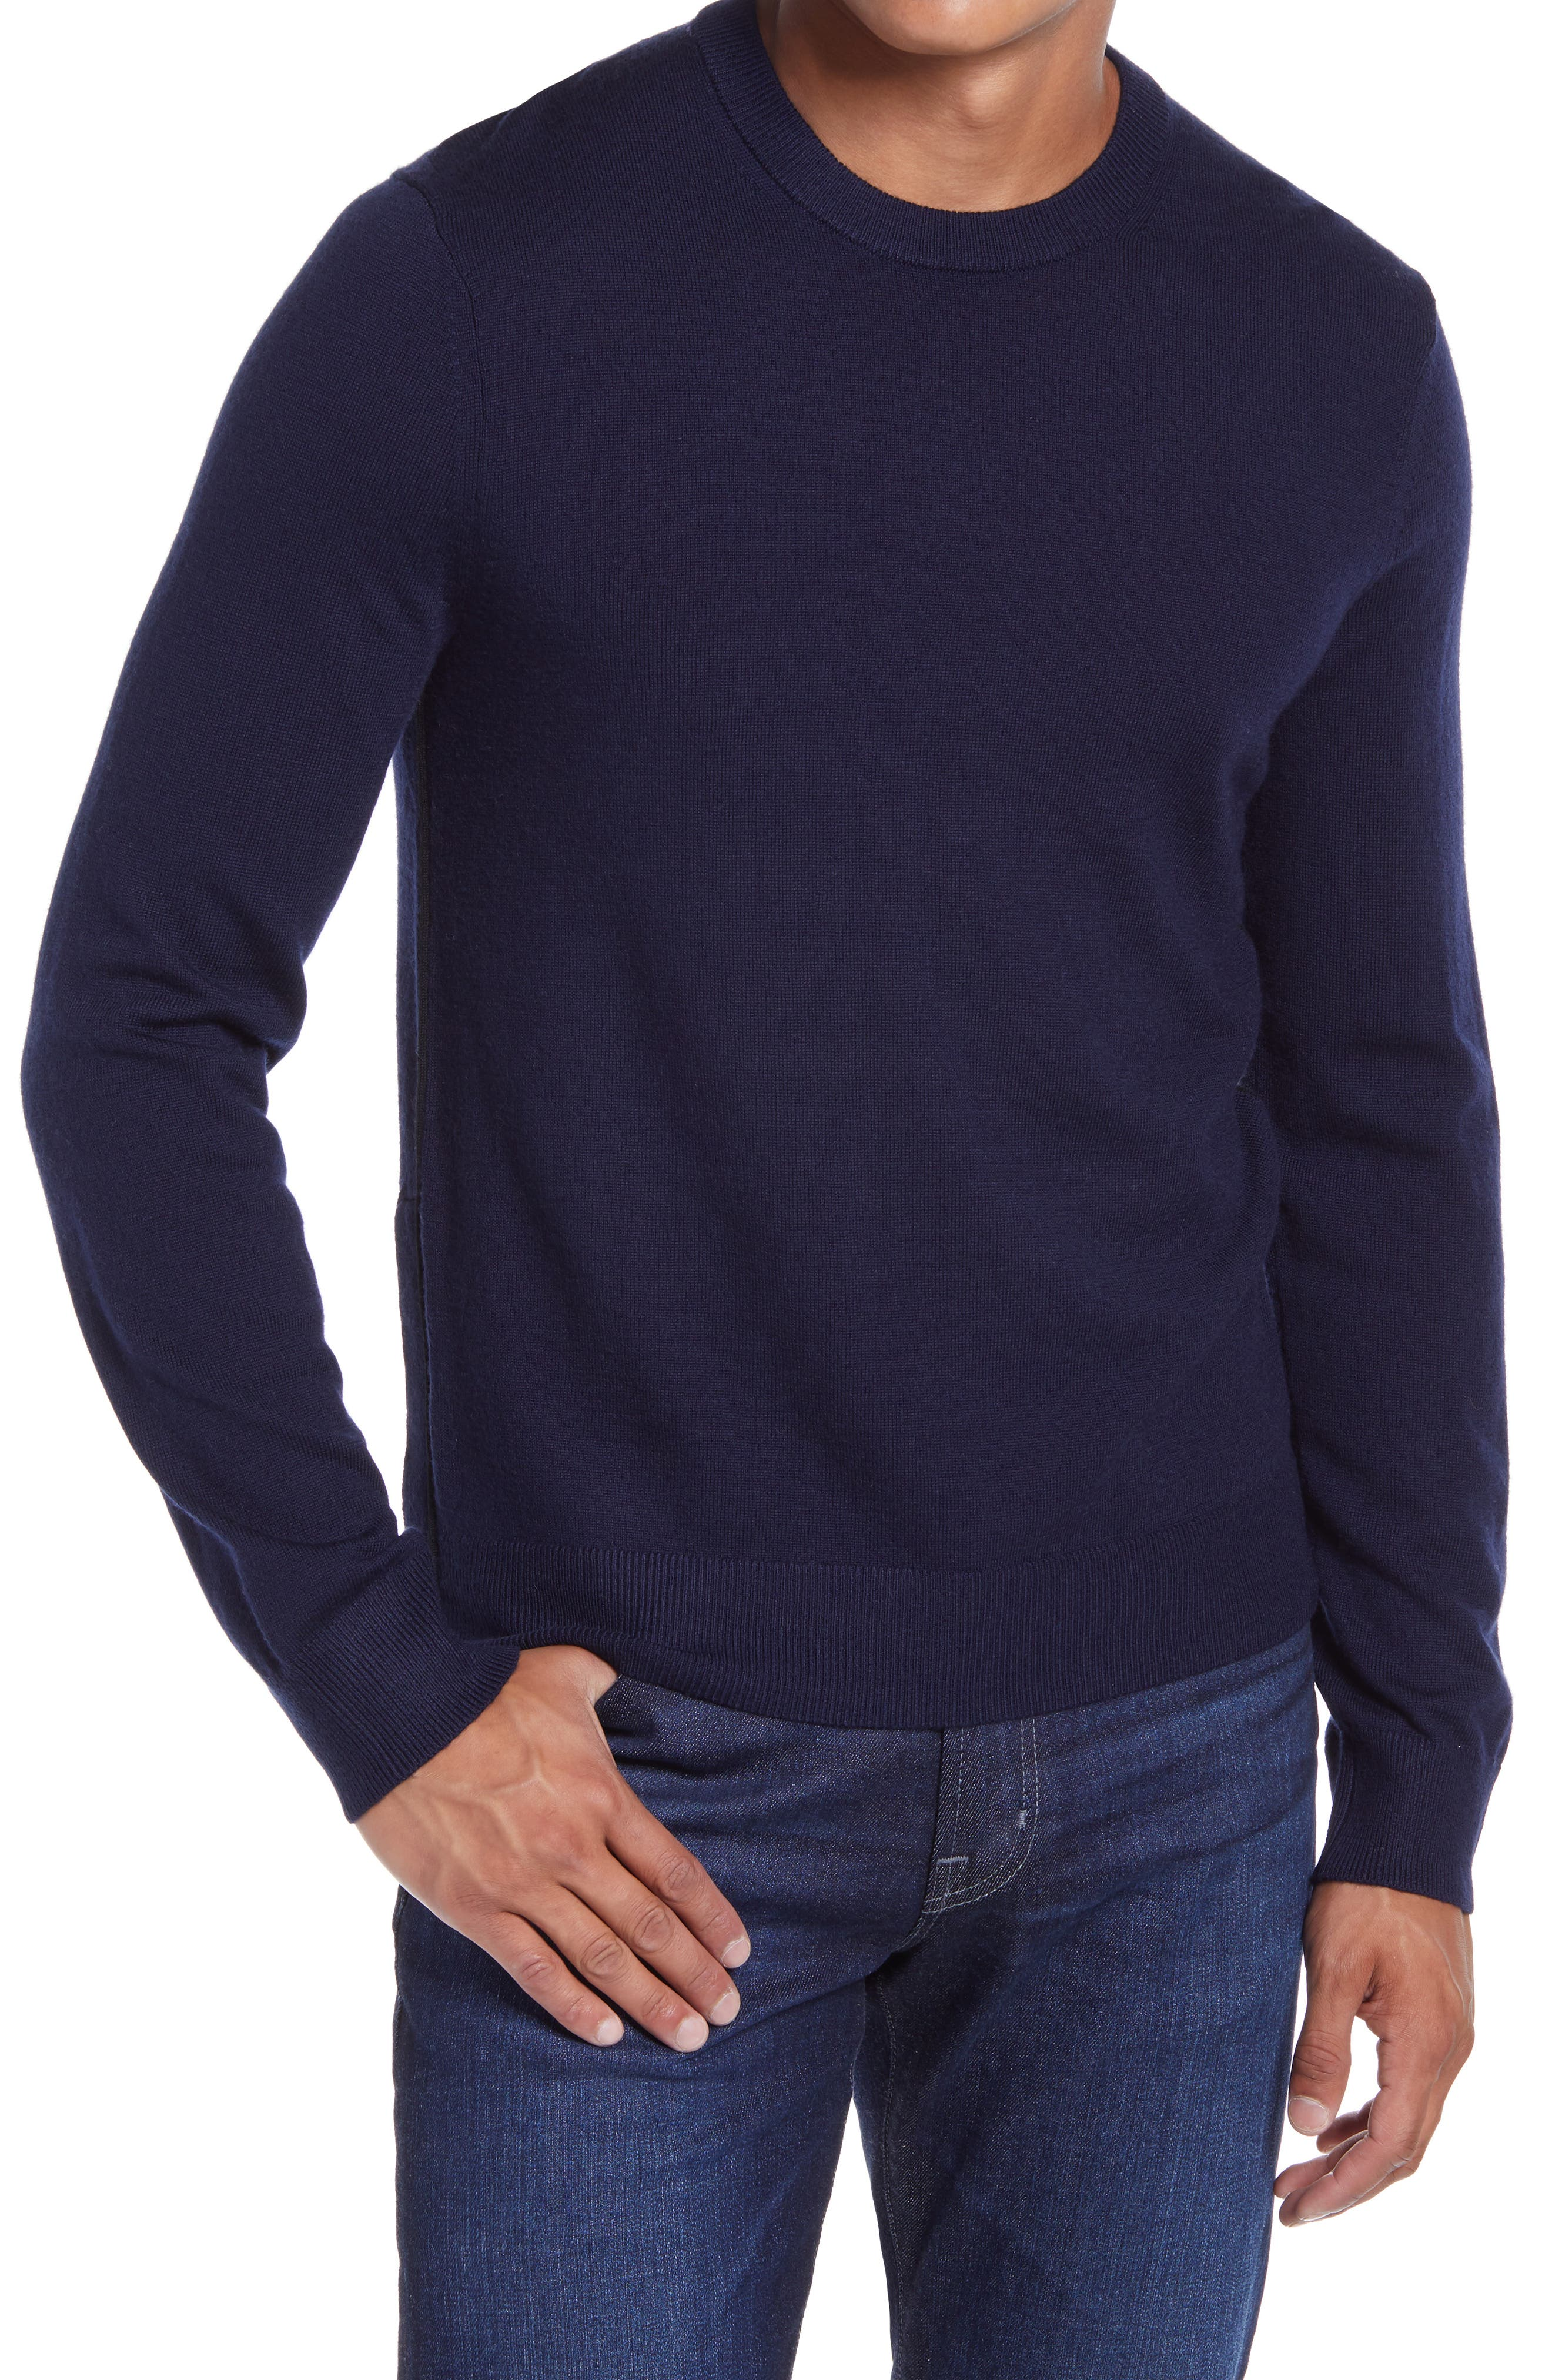 Solid coloring brings easy versatility to a staple crewneck sweater knit for comfort from soft wool yarn in a fit that\\\'s easy to layer or wear on its own. Style Name: Club Monaco Crewneck Wool Sweater. Style Number: 6085932. Available in stores.